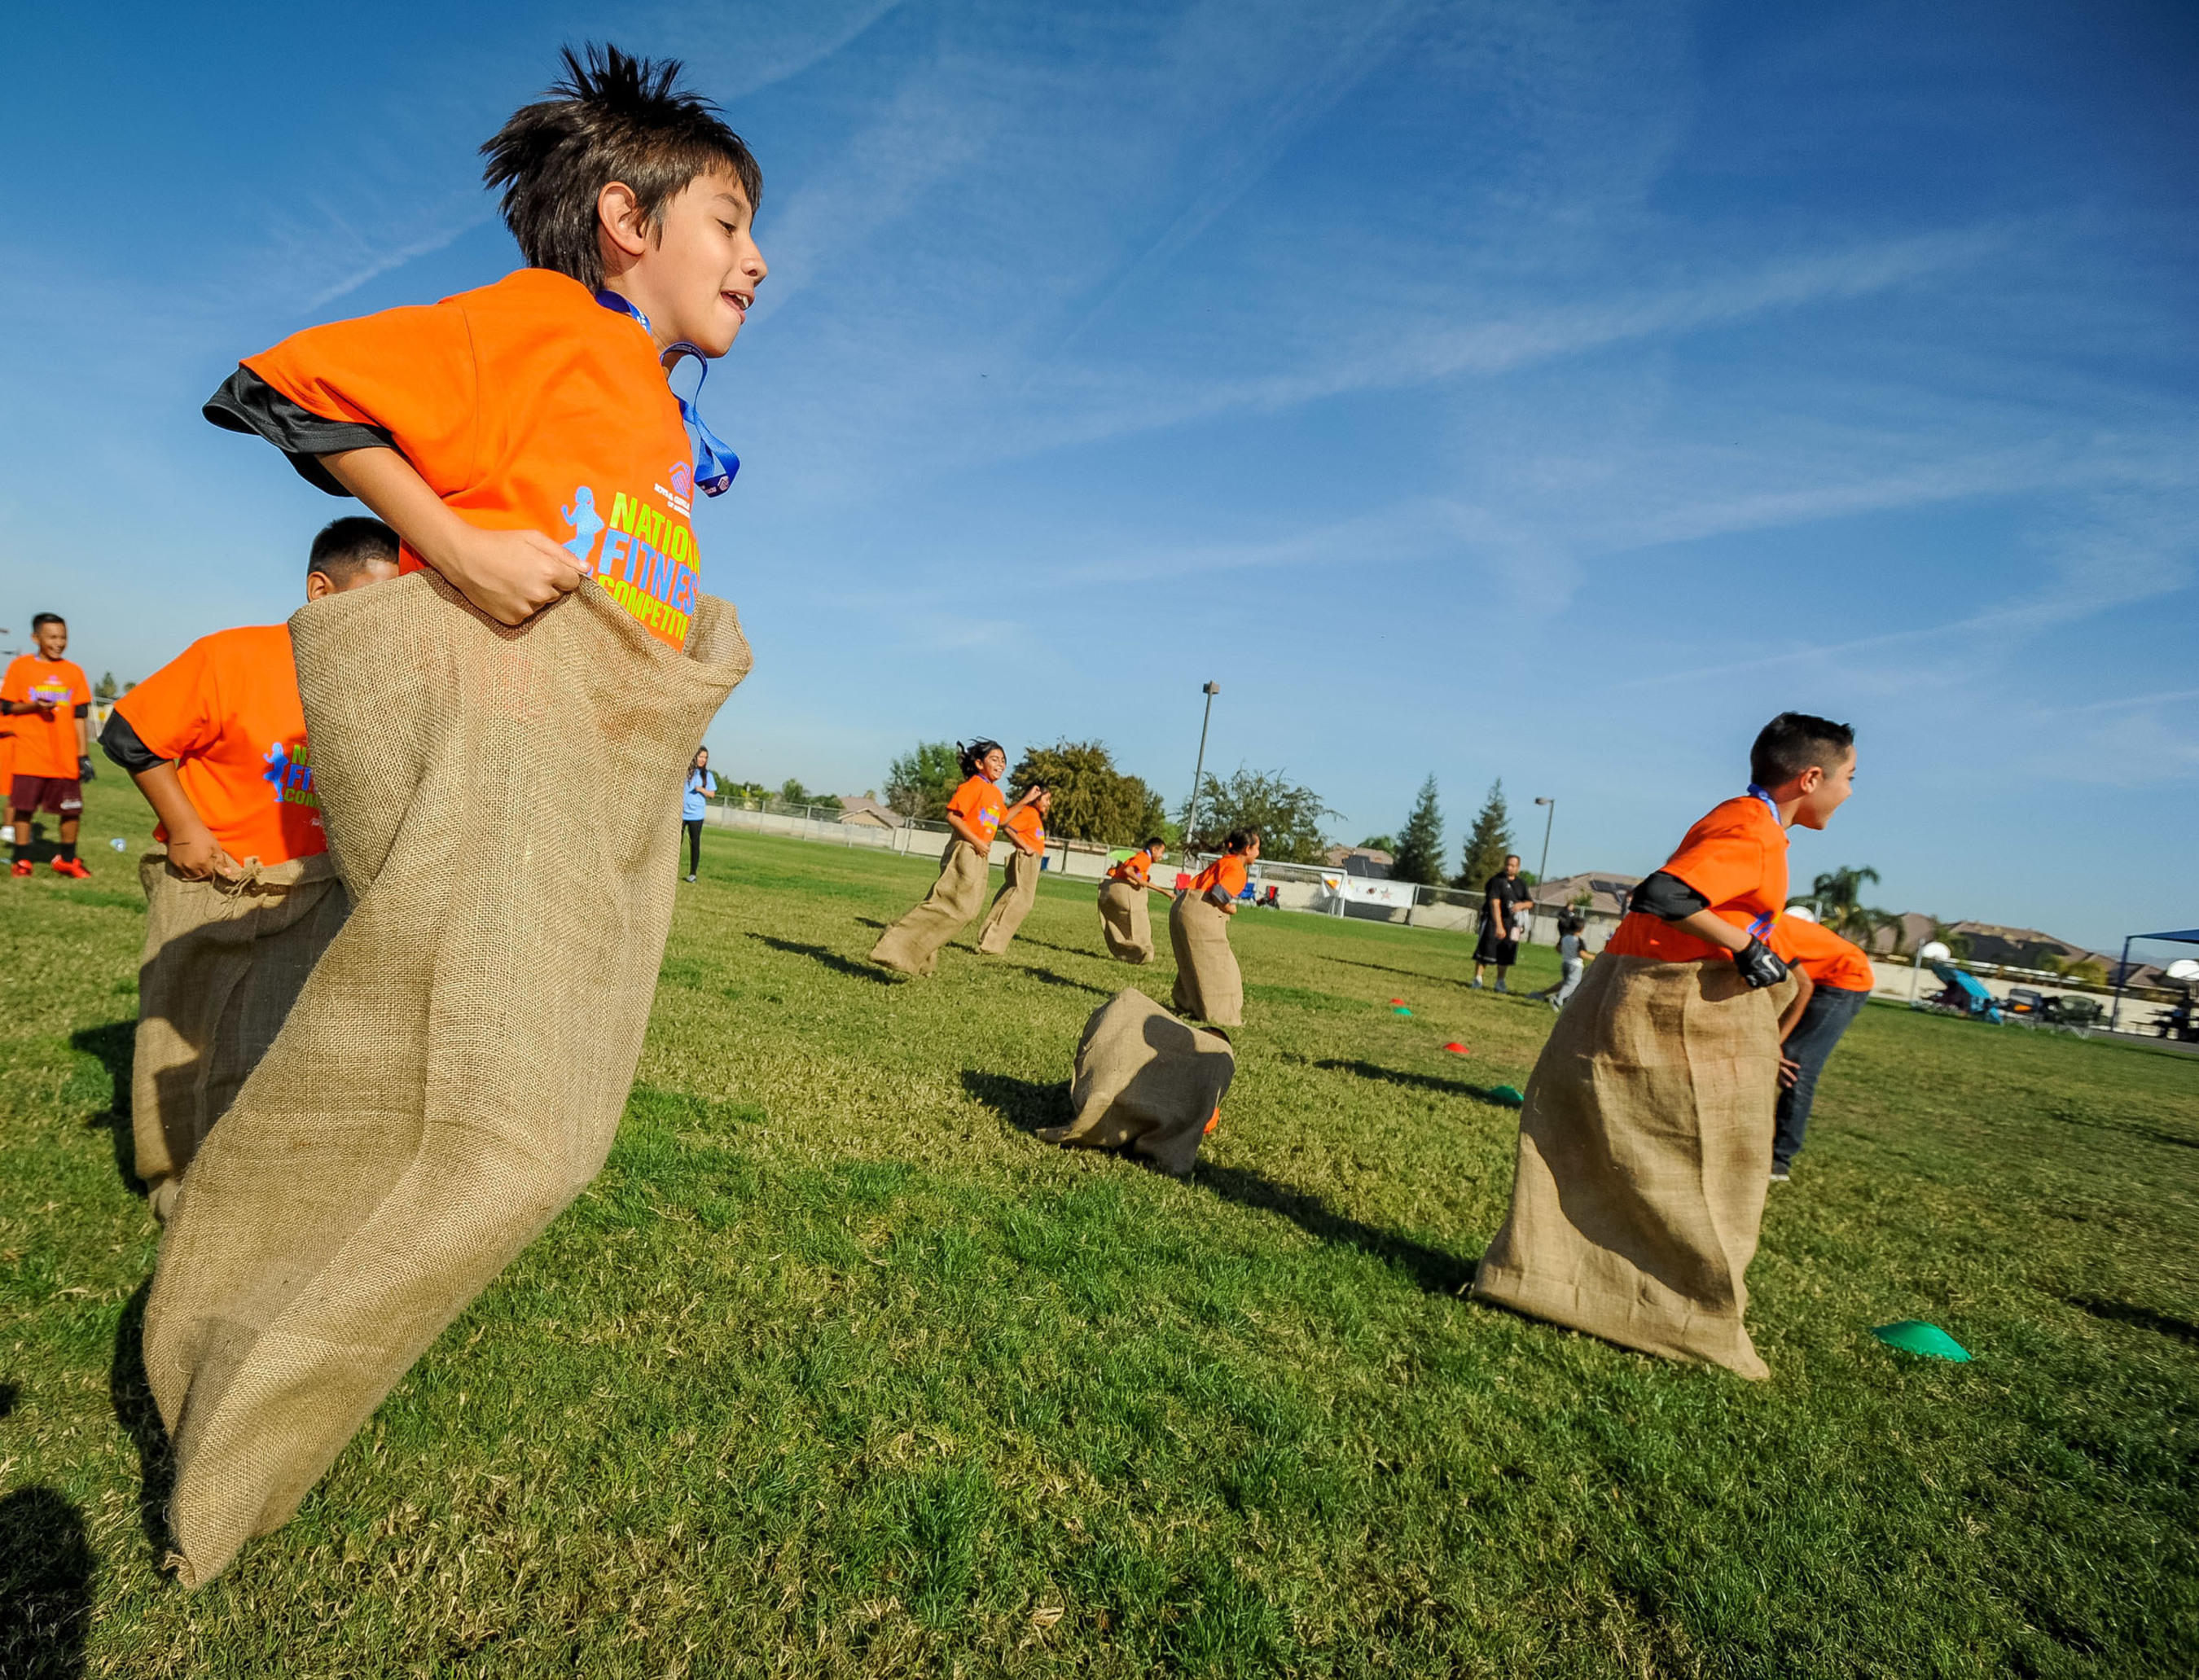 Youth from Boys & Girls Clubs of of Kern County participate in sack races during Boys & Girls Clubs of America and Nestle's National Fitness Competition in Bakersfield, California.